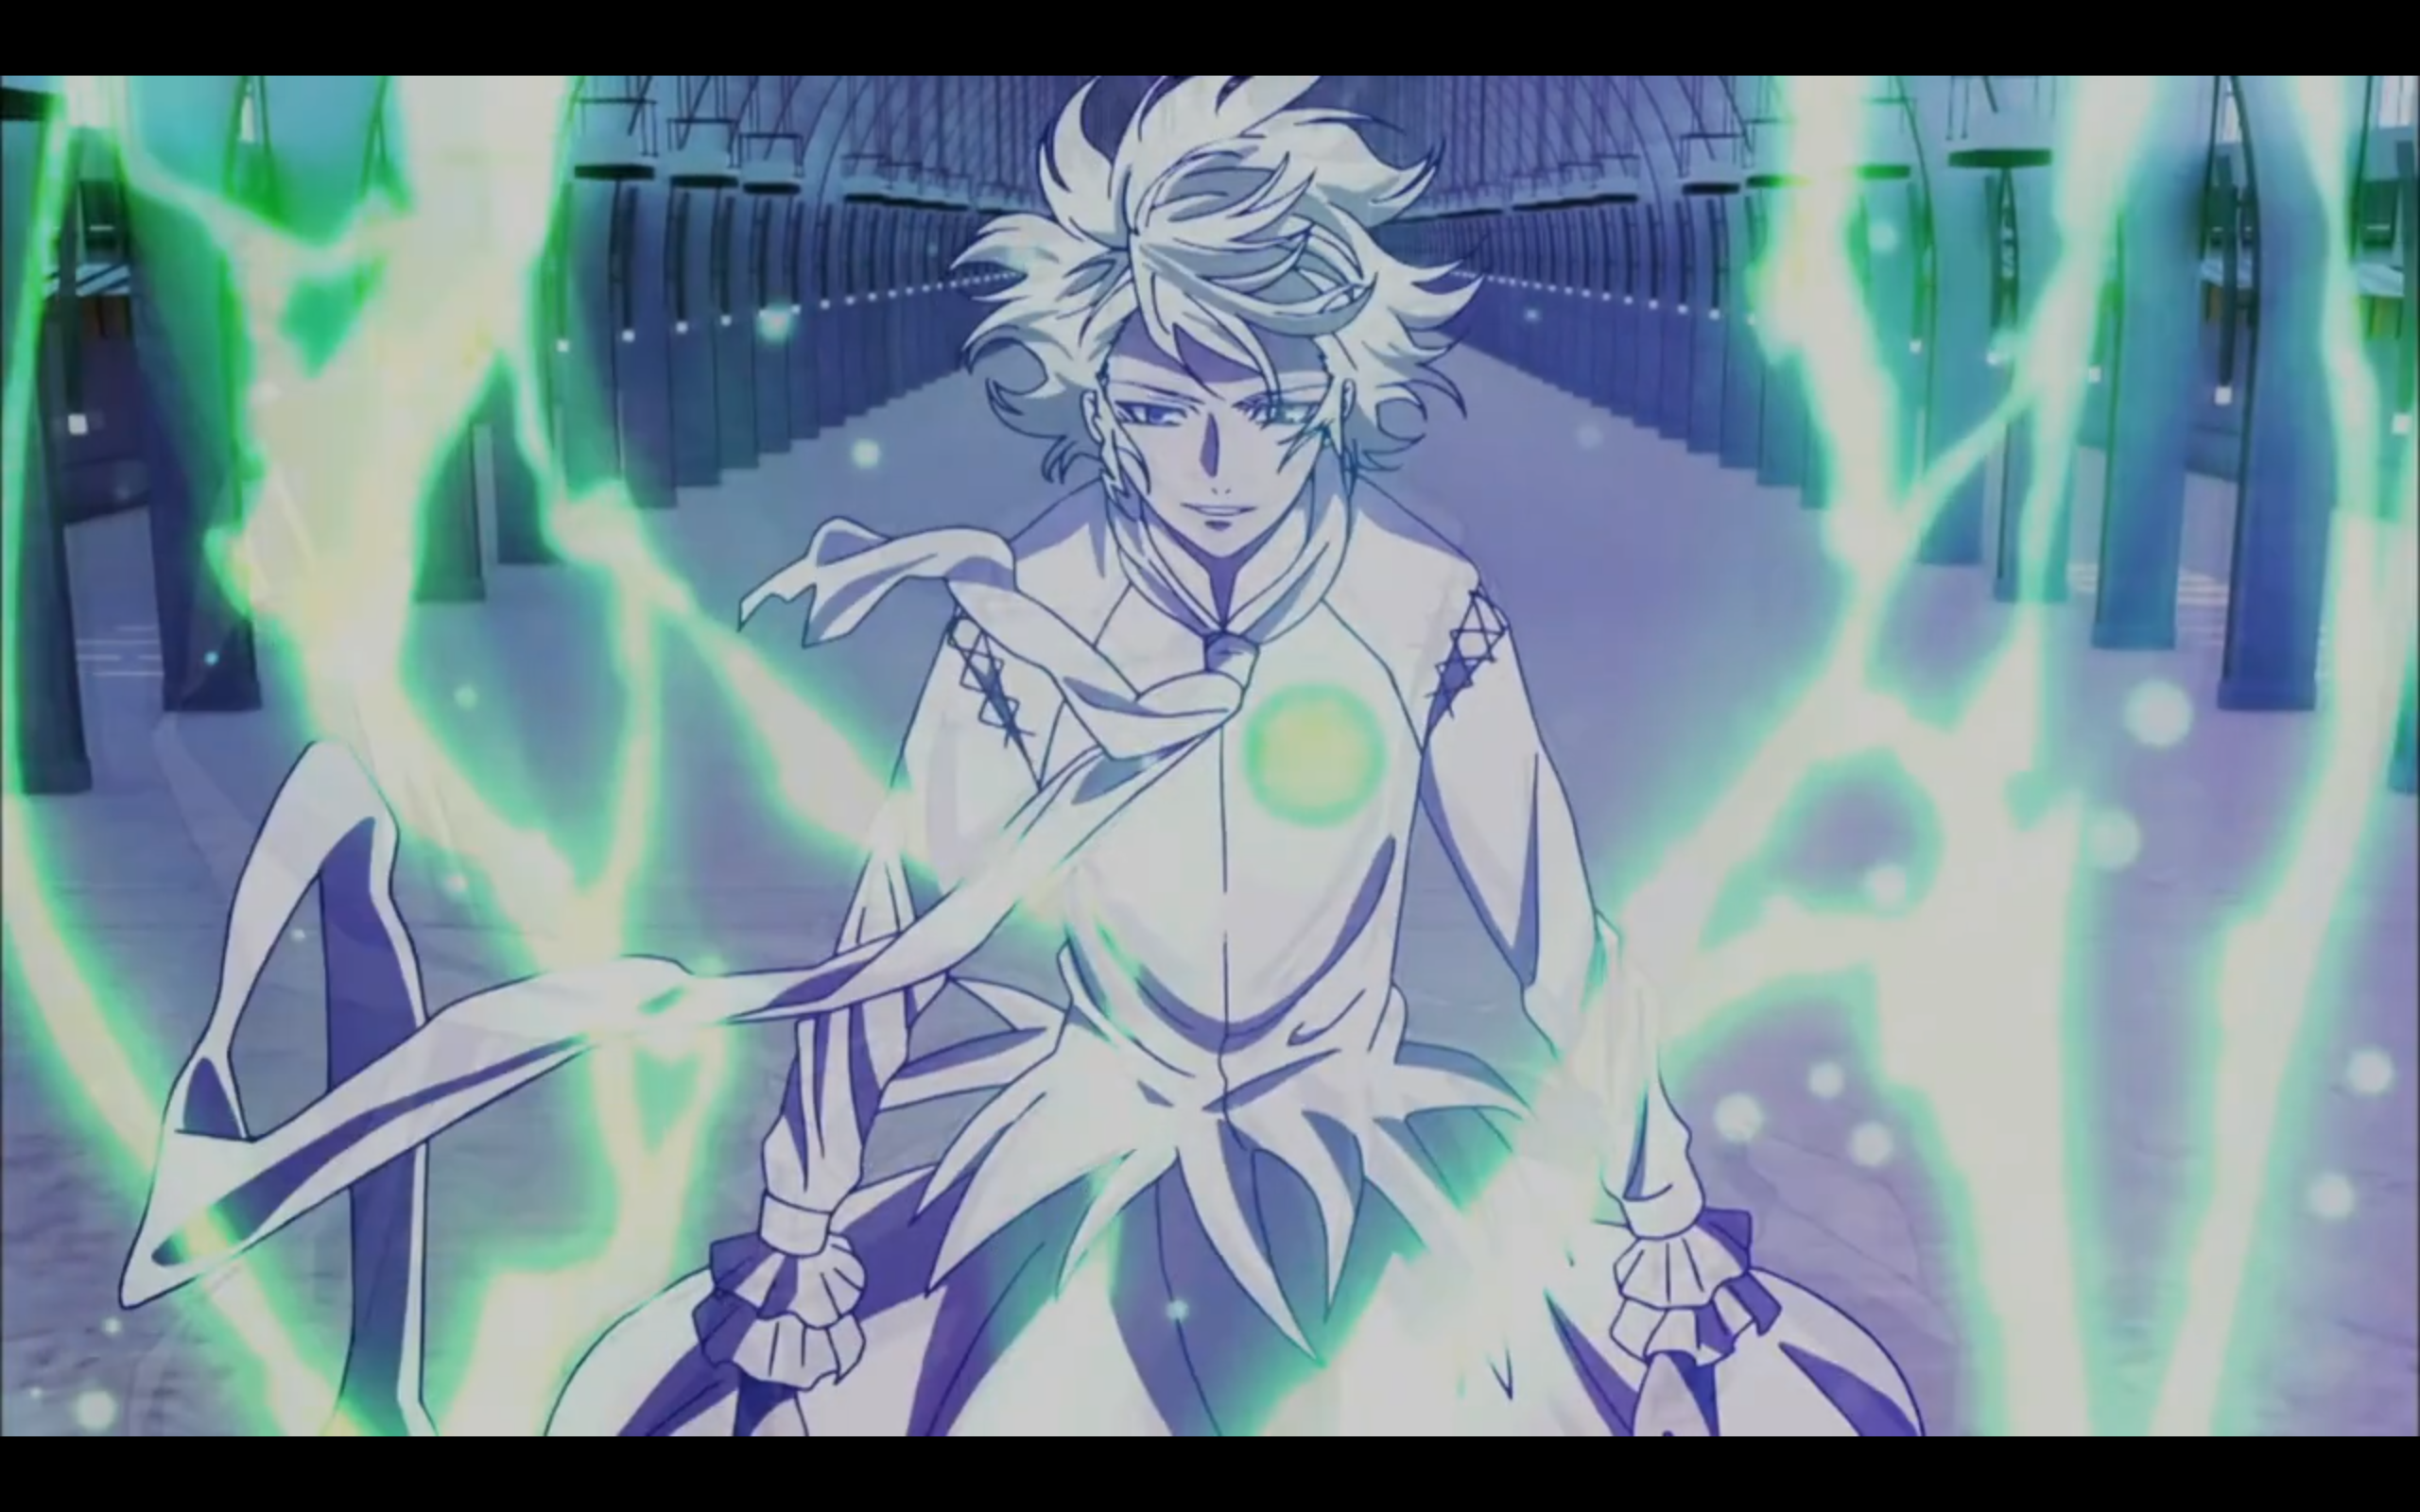 K Return Of Kings Ep7 Nagare Awesome Anime K Project Anime